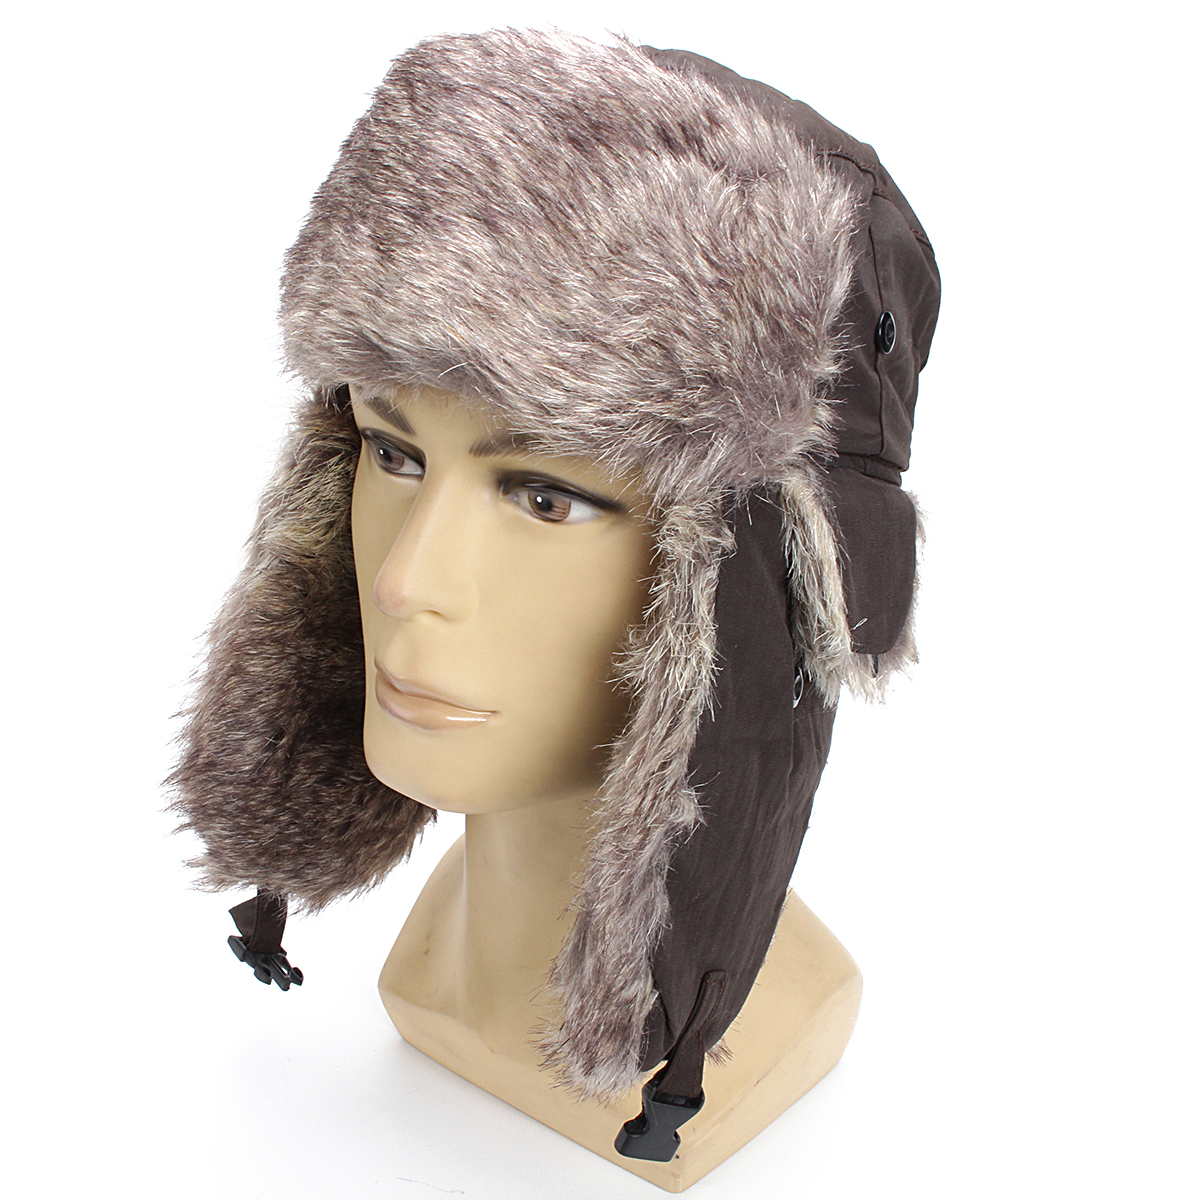 Unisex Russian Faux Fur Pilot Trapper Cap Outdoor Ski Ear Protective Hat